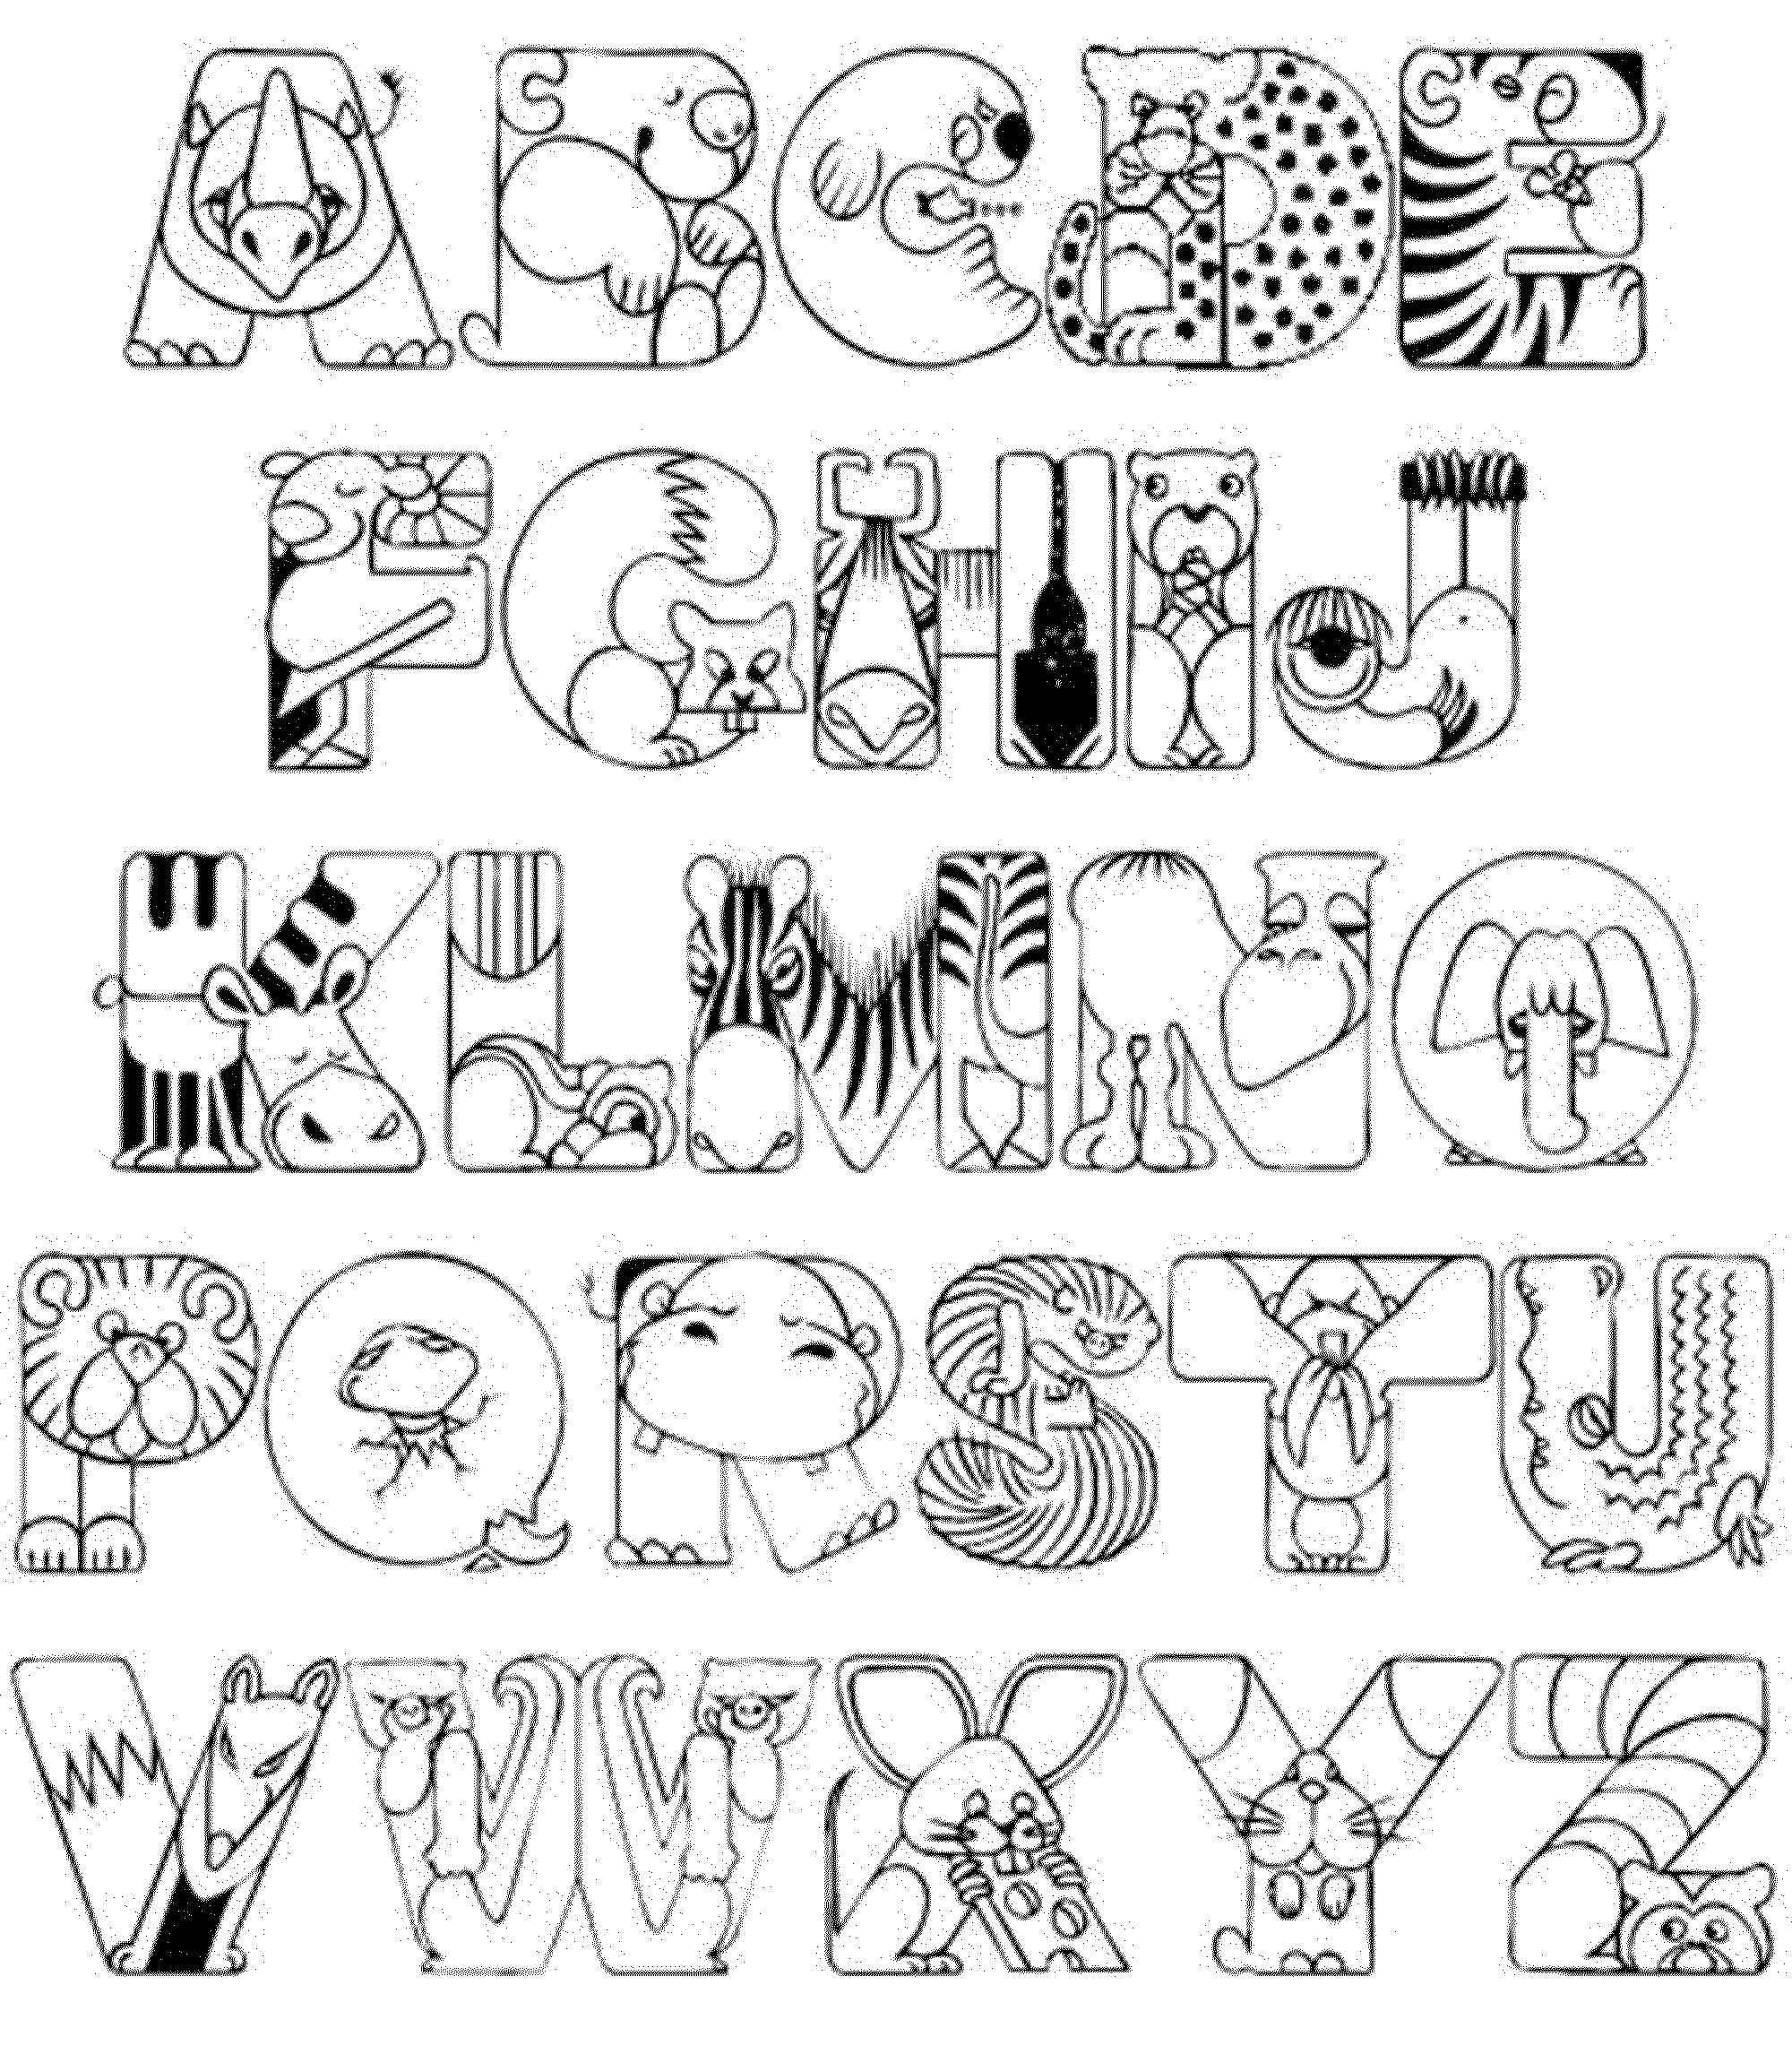 abc coloring page english alphabet coloring pages judy havrilla abc page coloring